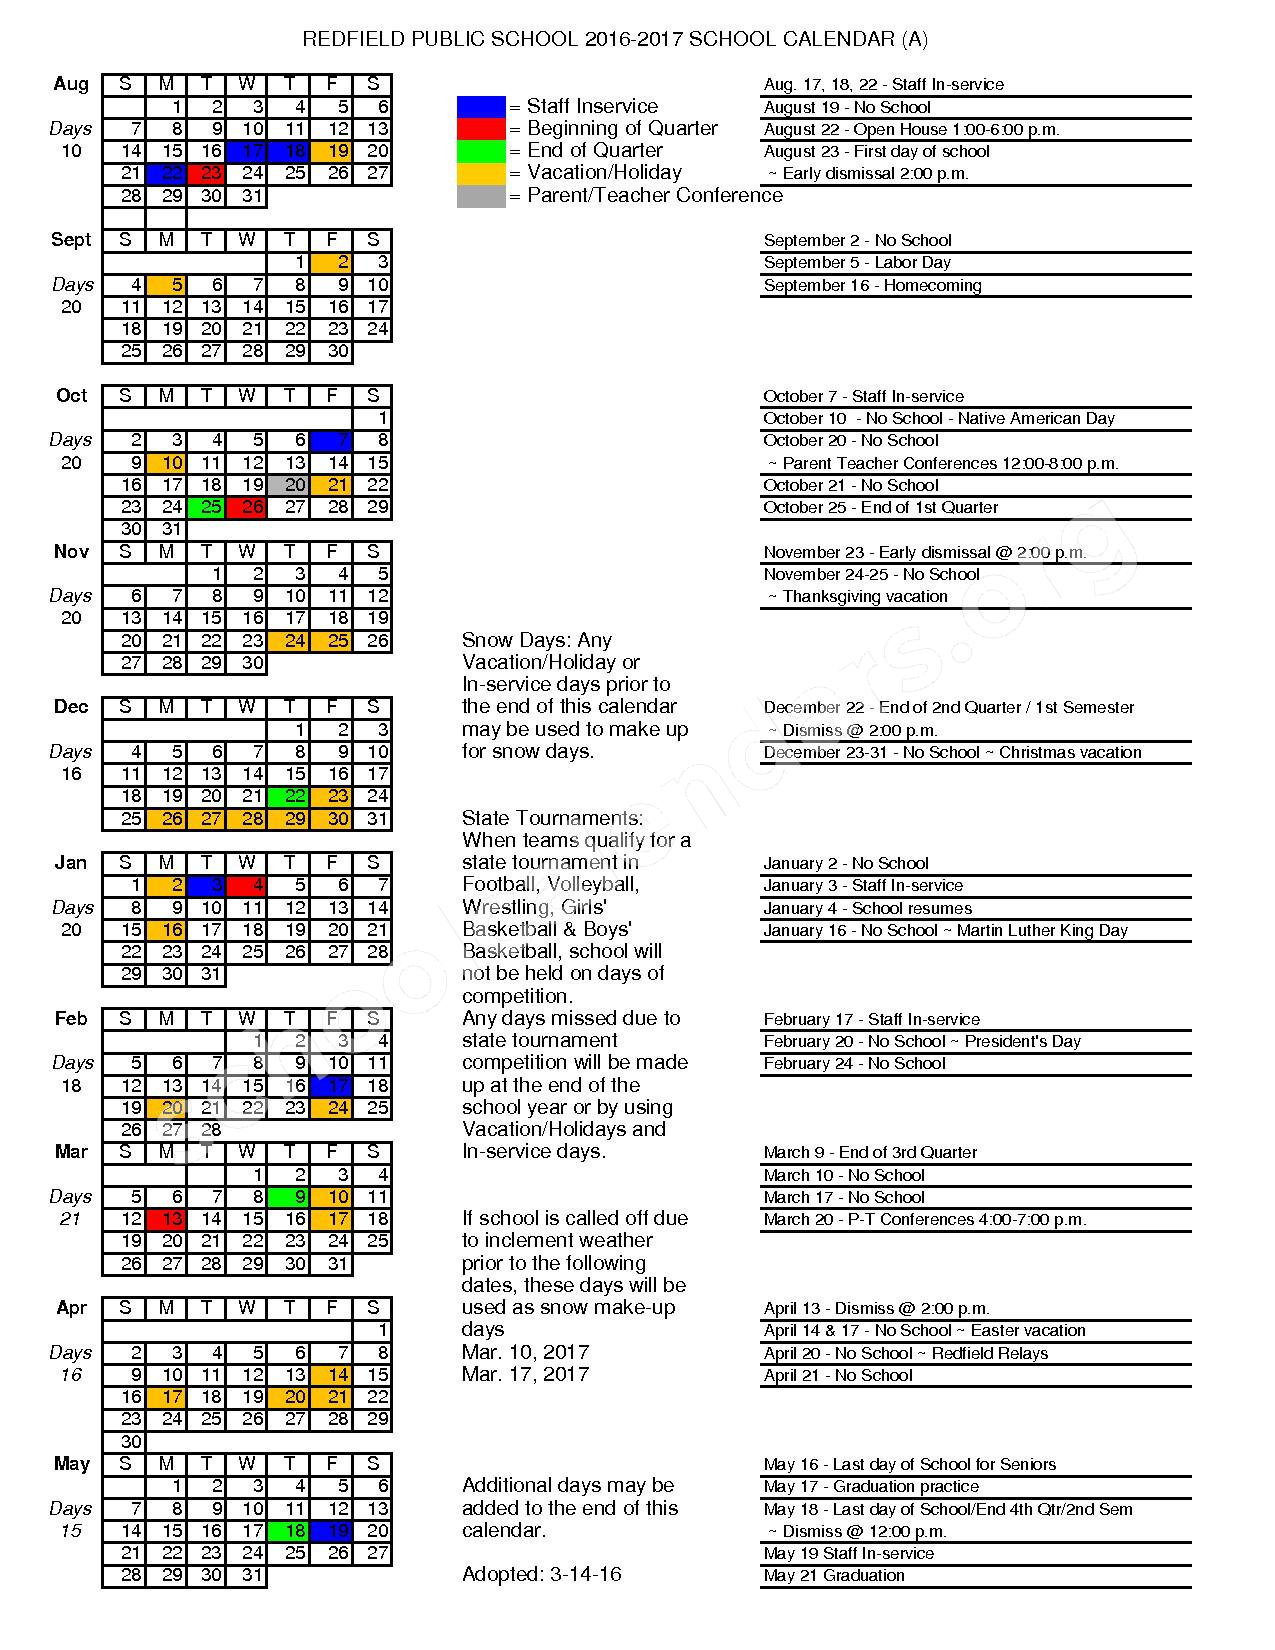 2016 - 2017 District Calendar – Redfield School District 56-4 – page 1